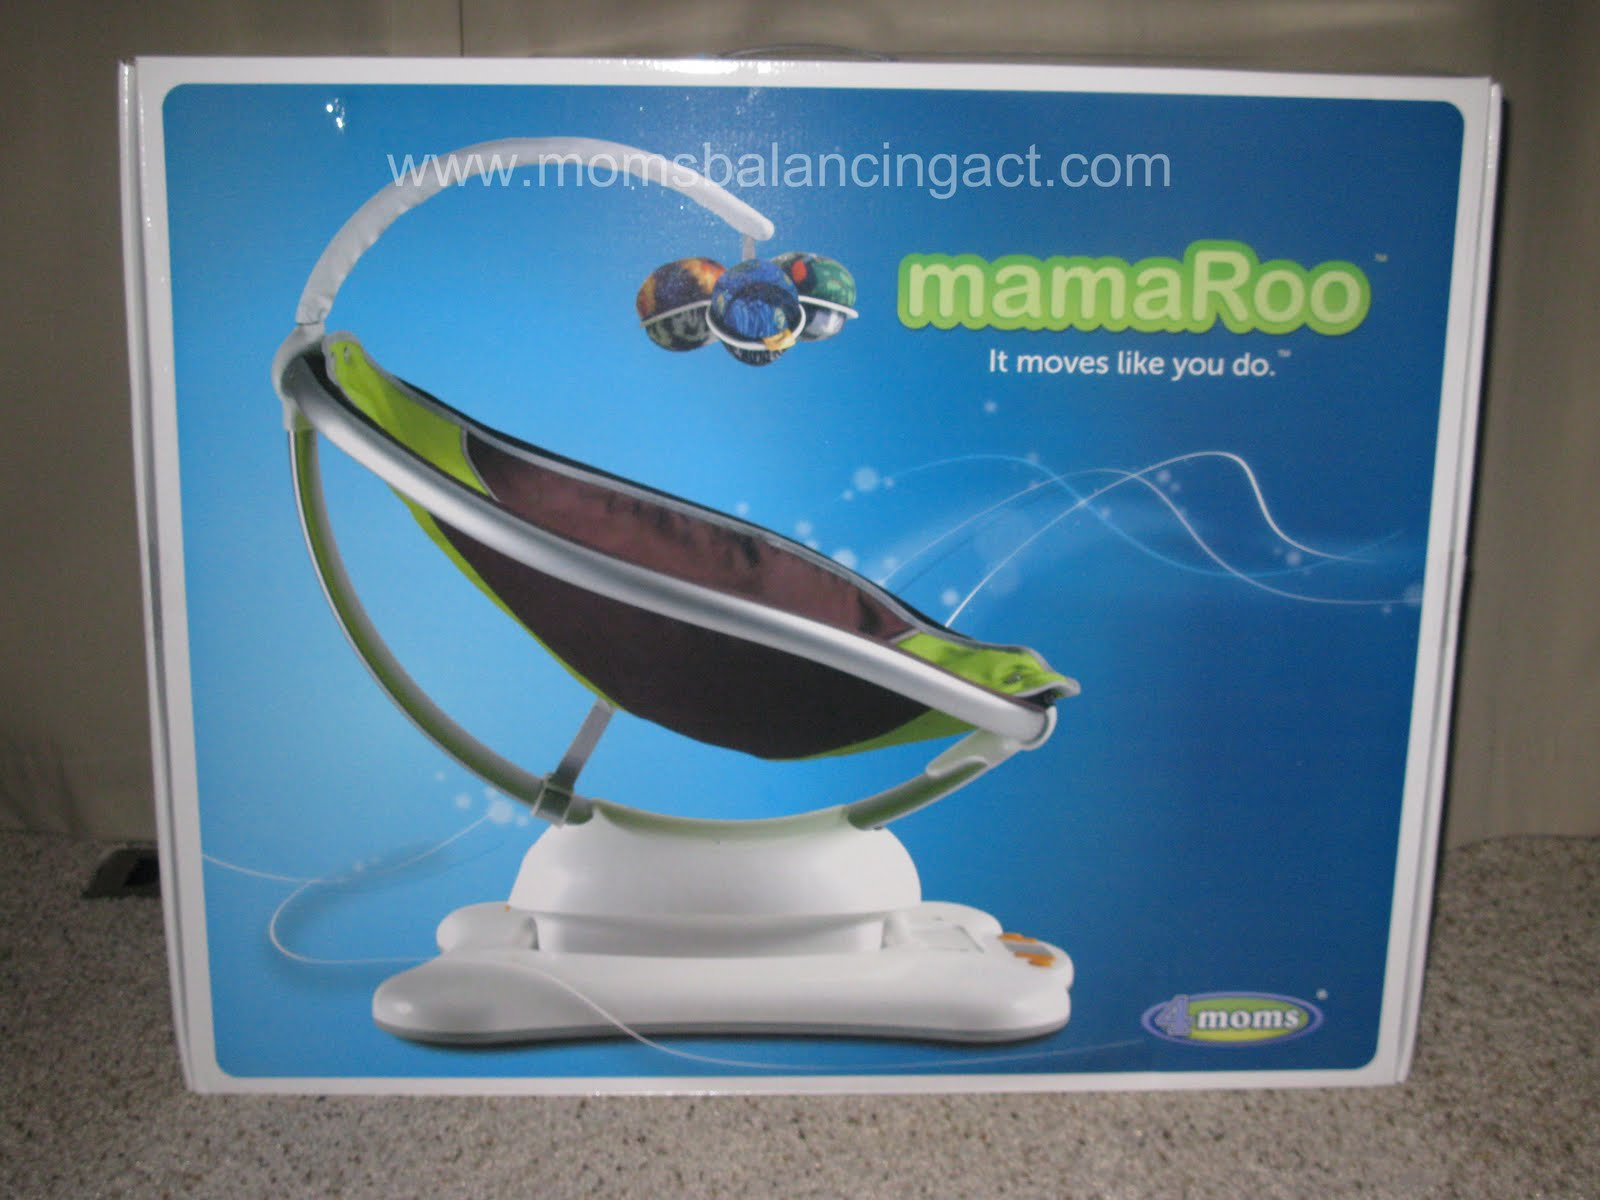 4moms: mamaRoo ~ It Moves Like You Do! Review & Giveaway